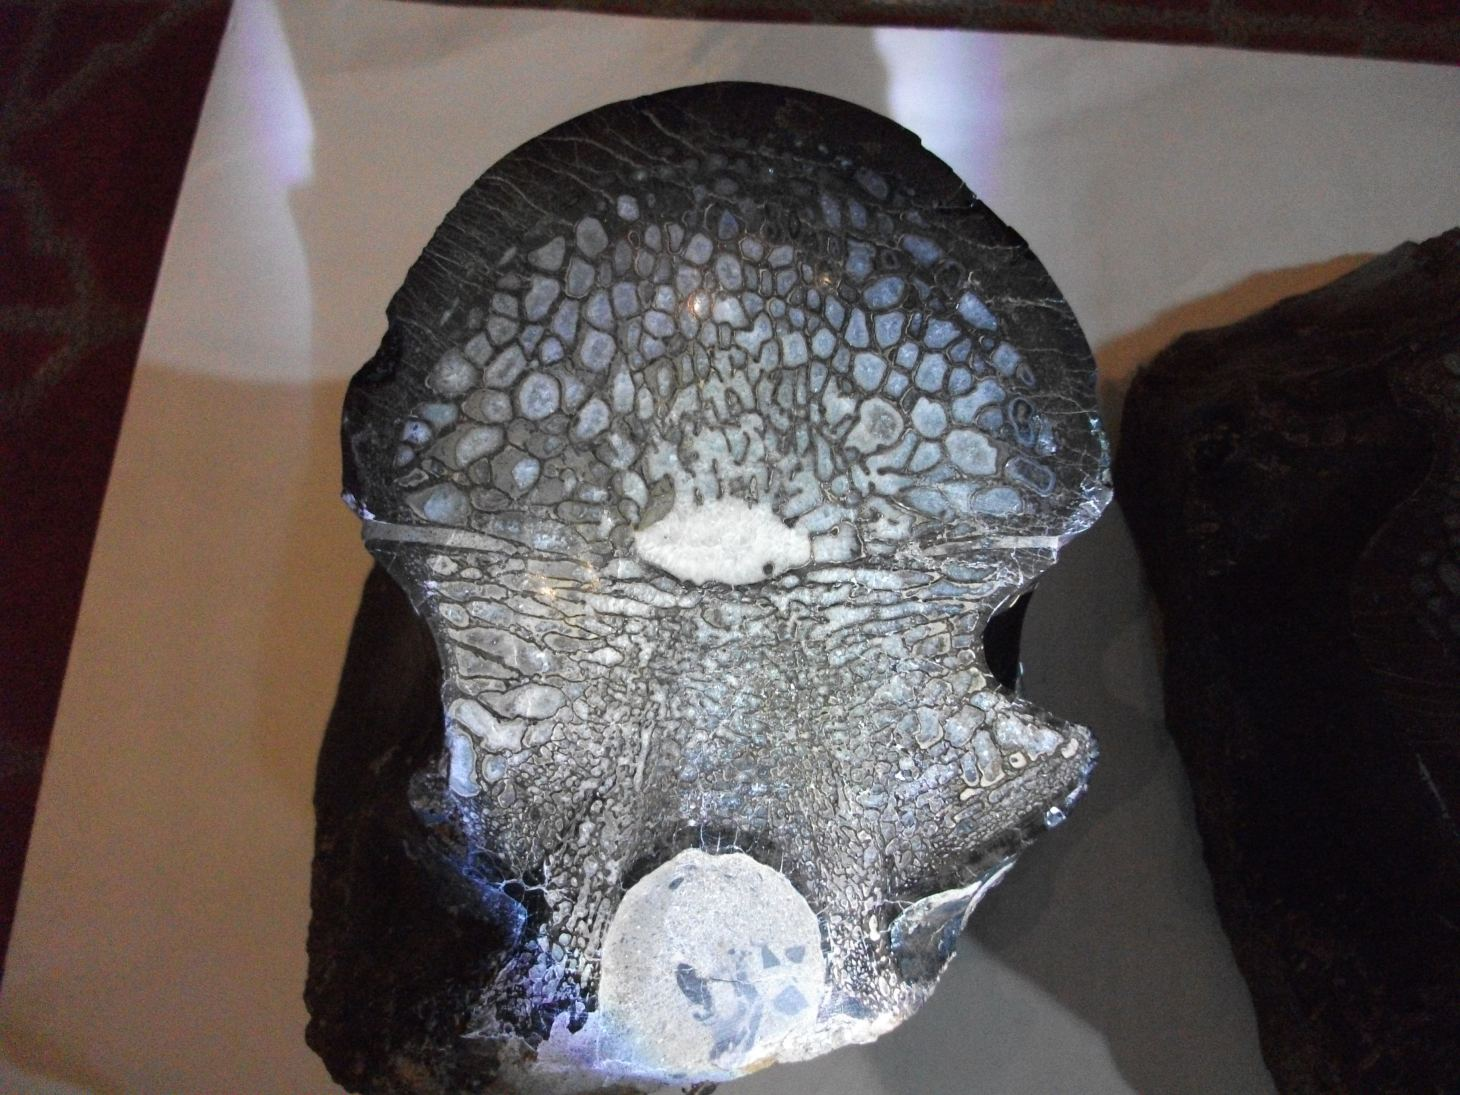 Allosaurus Vertebra (1) by Thomas Peace c. 2013